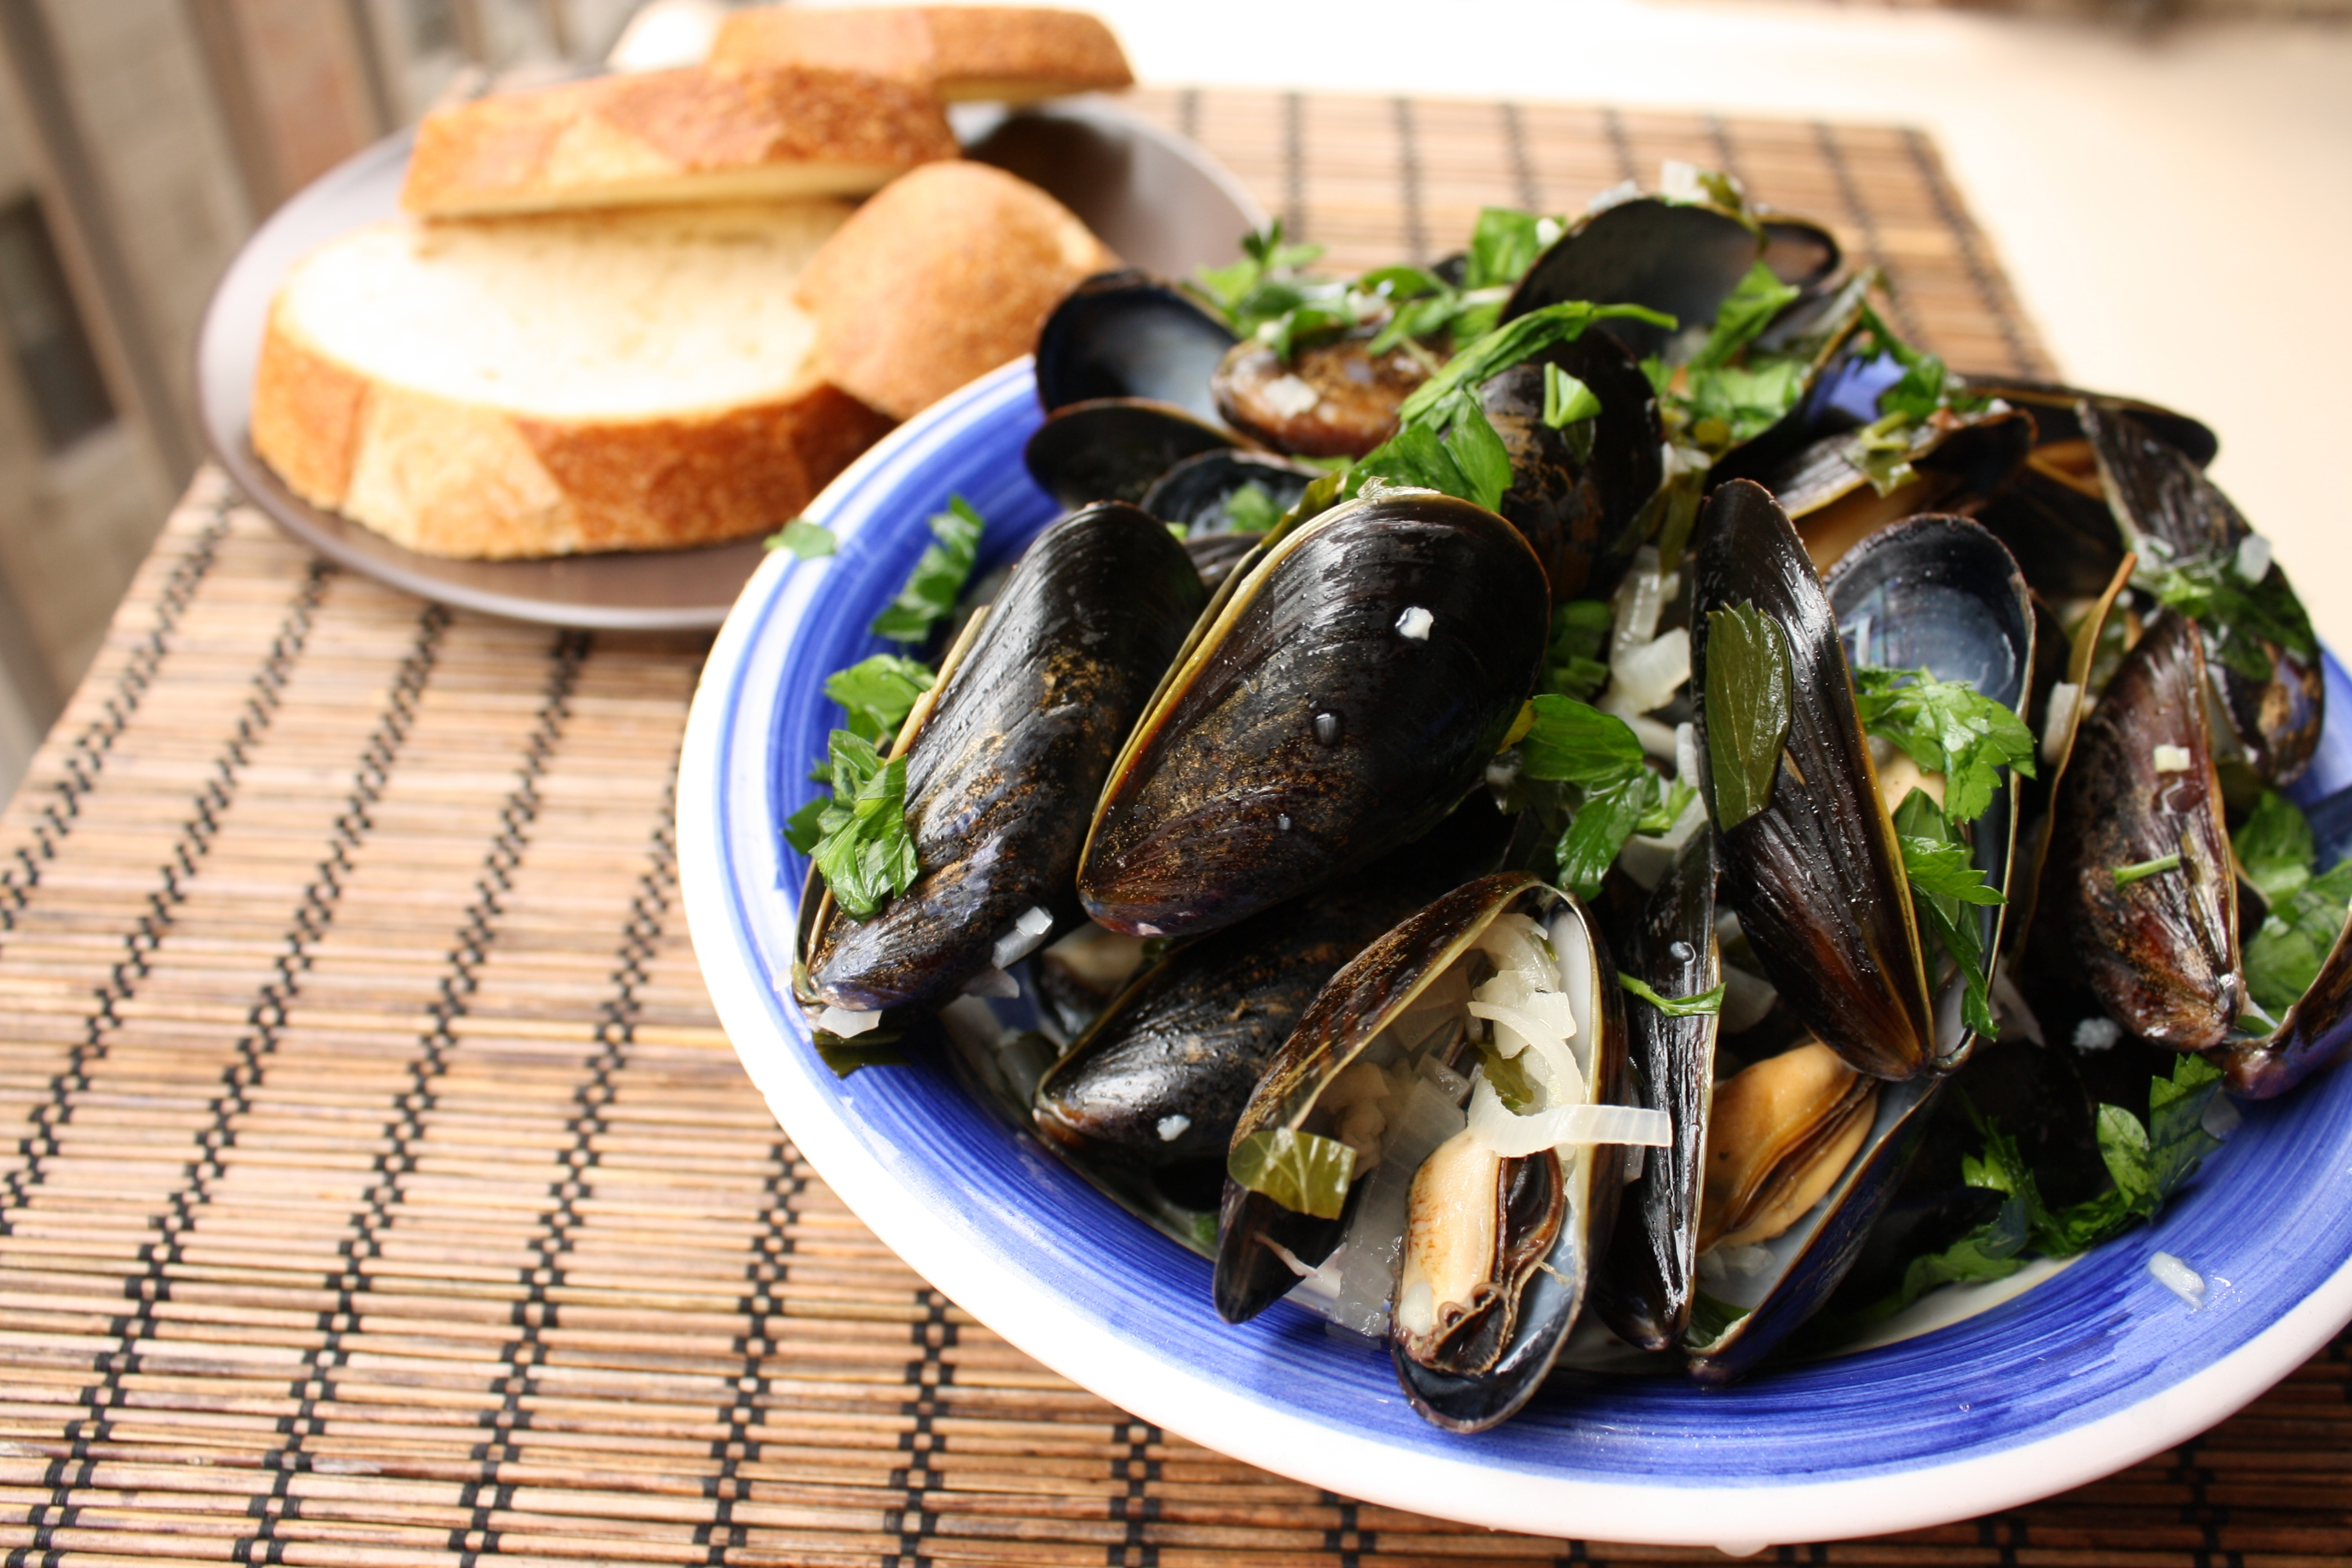 Mussels in White Wine Sauce Recipe {Gluten Free, Dairy Free}